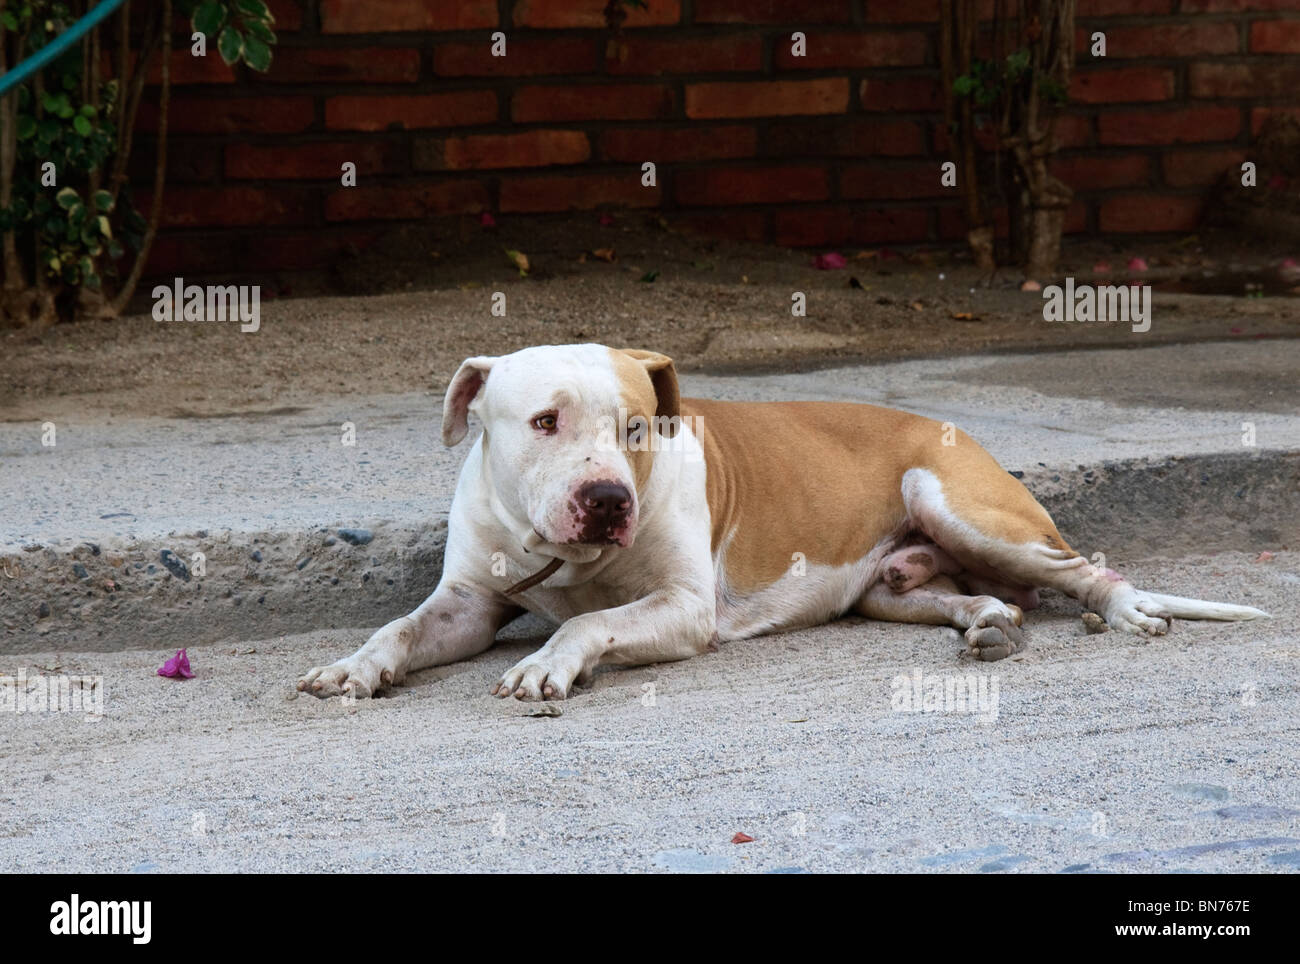 Pit Bull terrier  lying on a street of Bucerias, State of Nayarit, Mexico - Stock Image